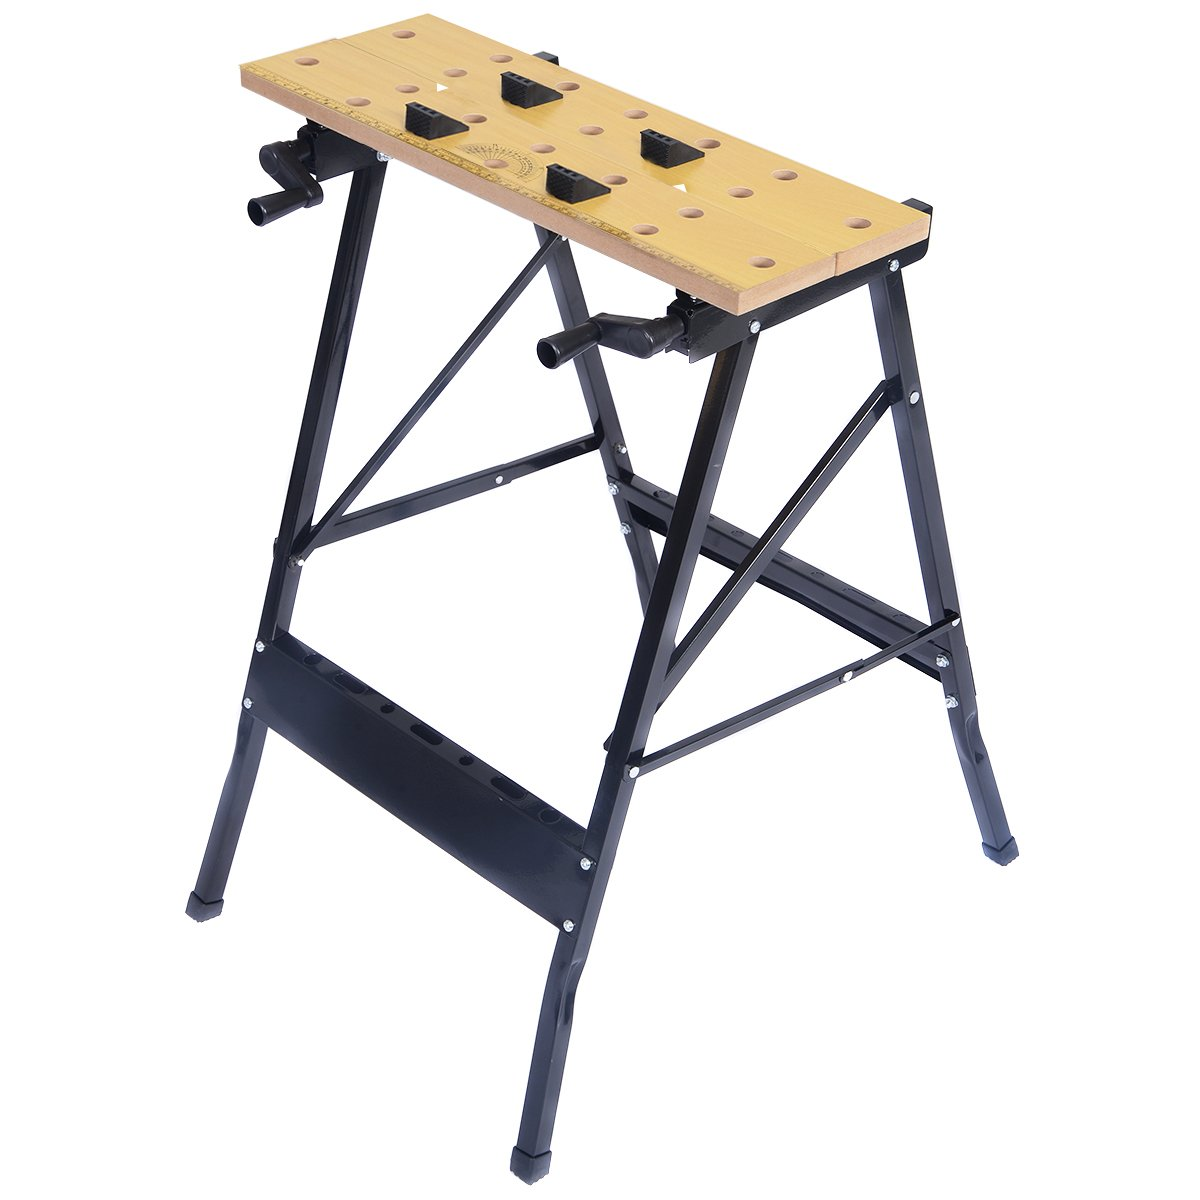 Goplus Folding Work Bench Sawhorse with Clamp,Pegs and Tool Holders, 350lbs Weight Capacity